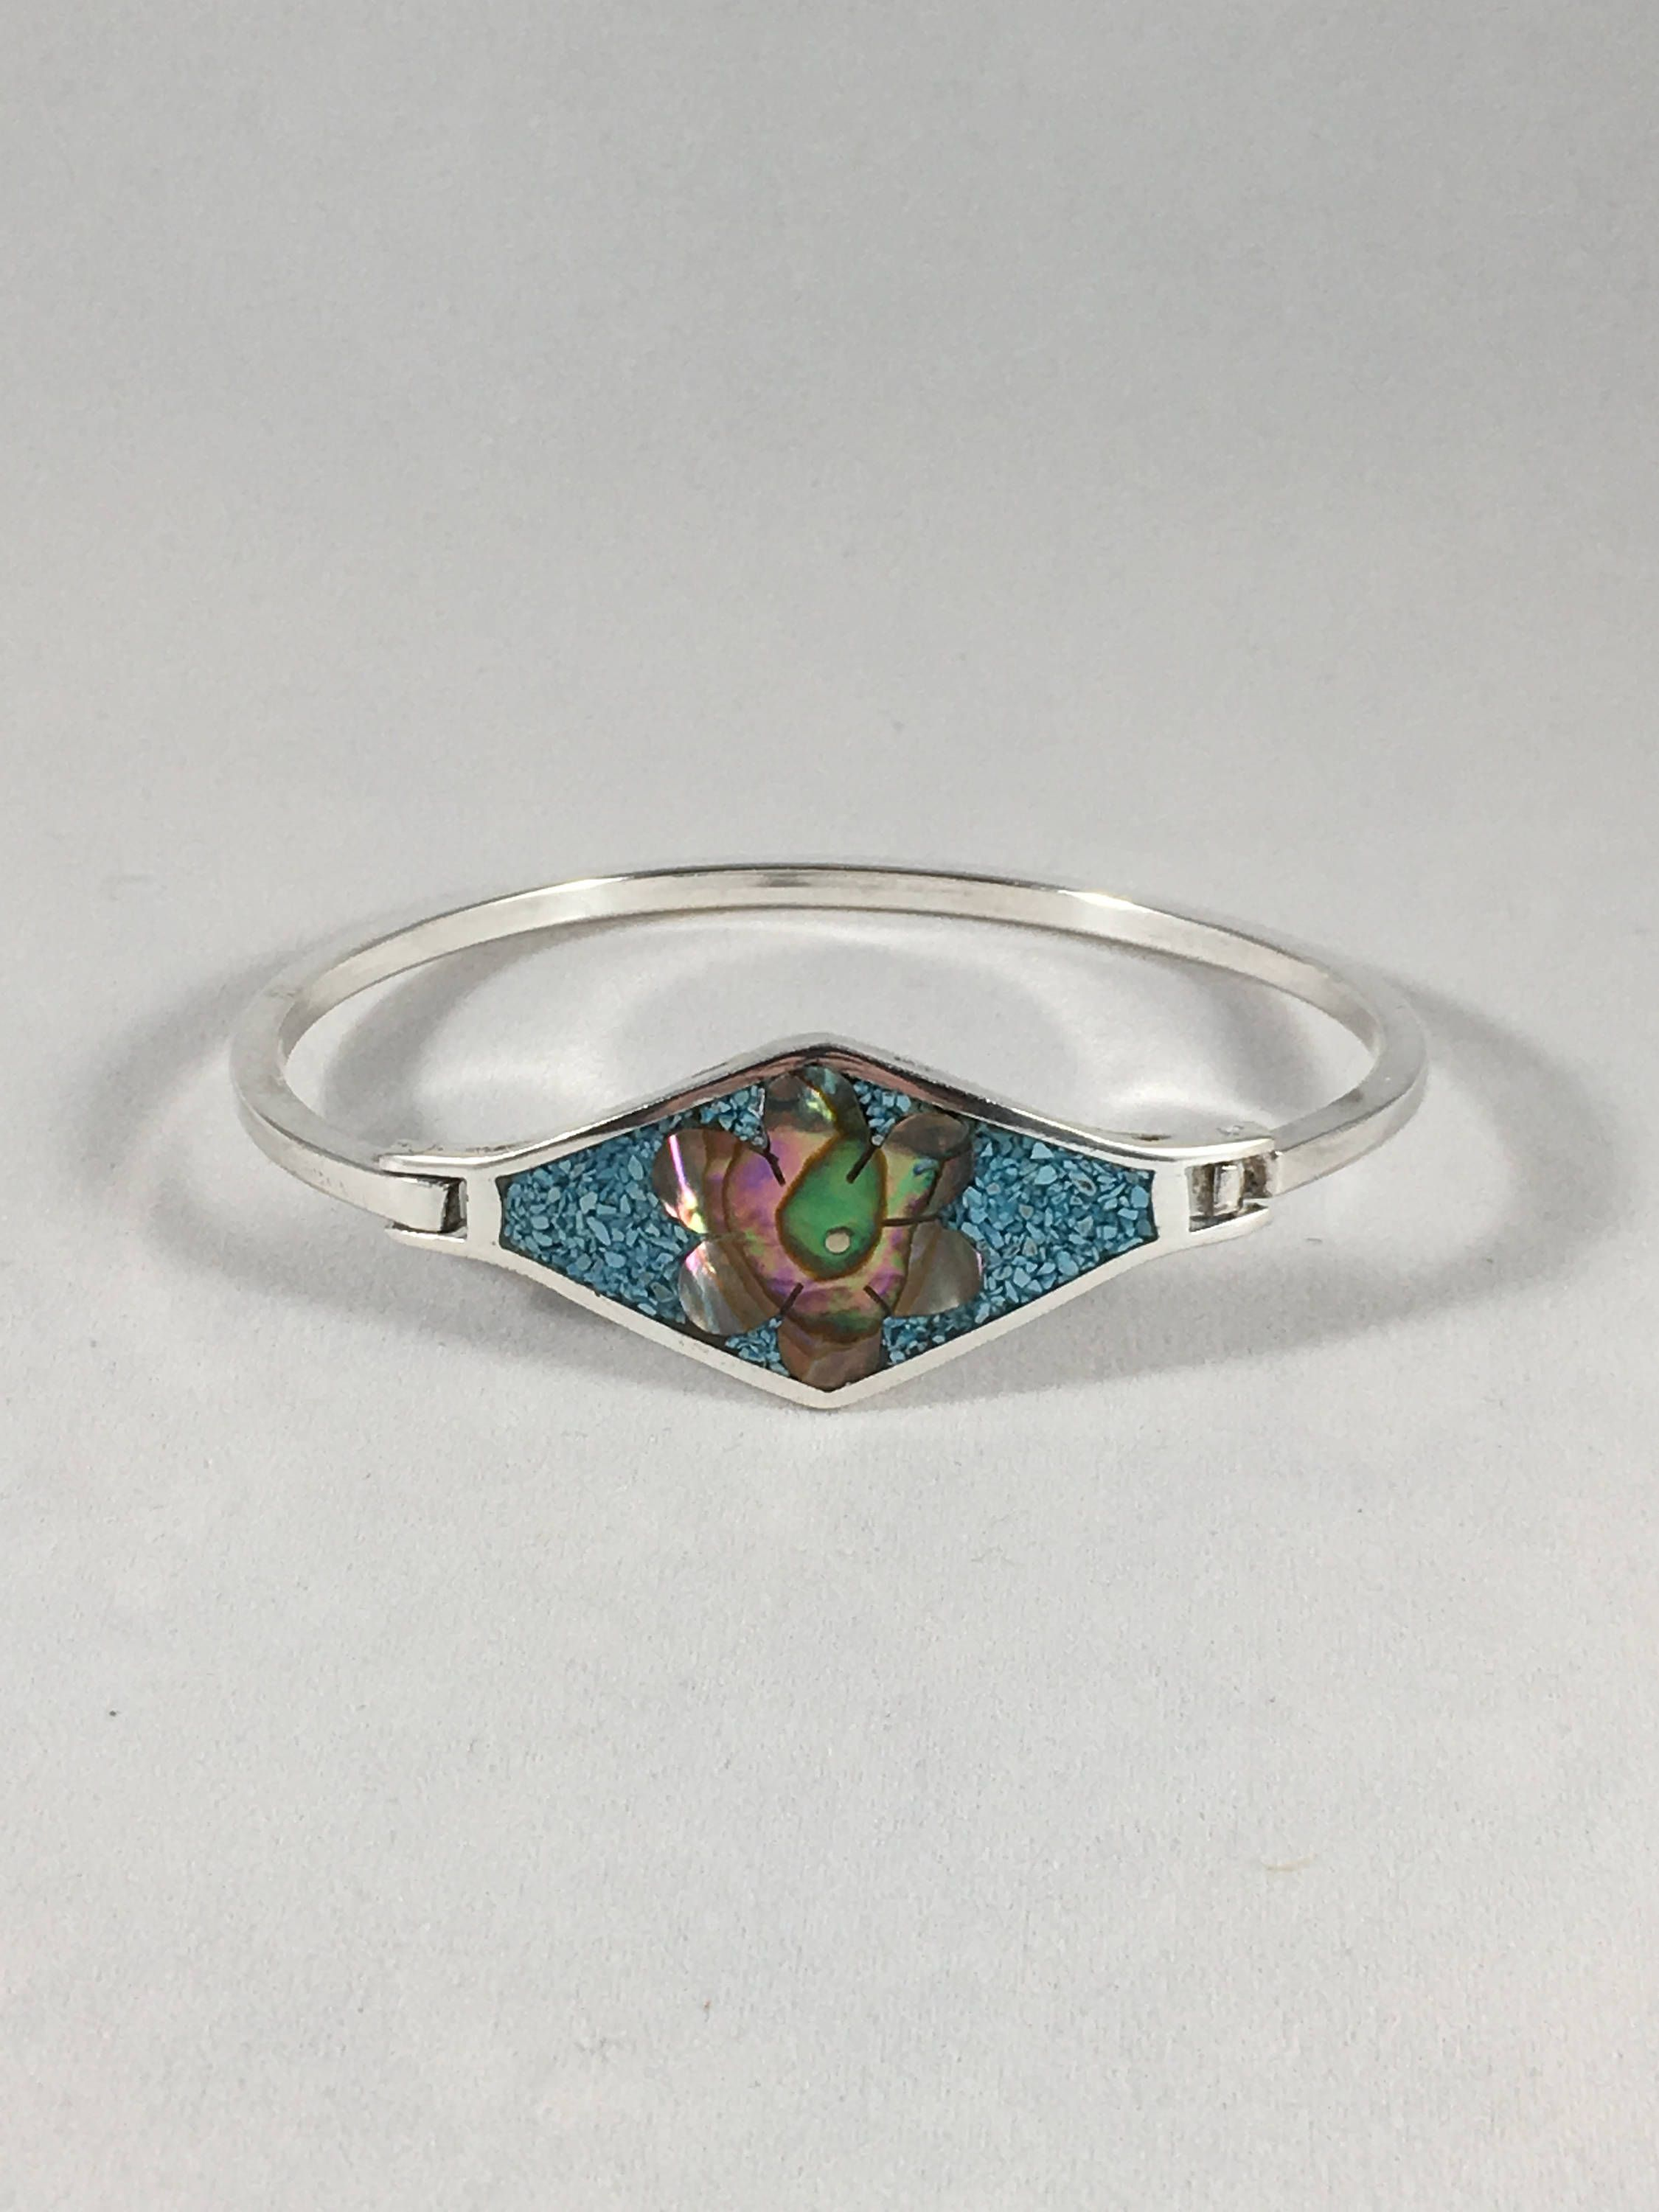 shell features stone artisan engagement rings devotion btq ring kung abalone sterling or products undefined vintage handcrafted style sr aeravida the endearing thailand a this silver from shaped true turquoise heart